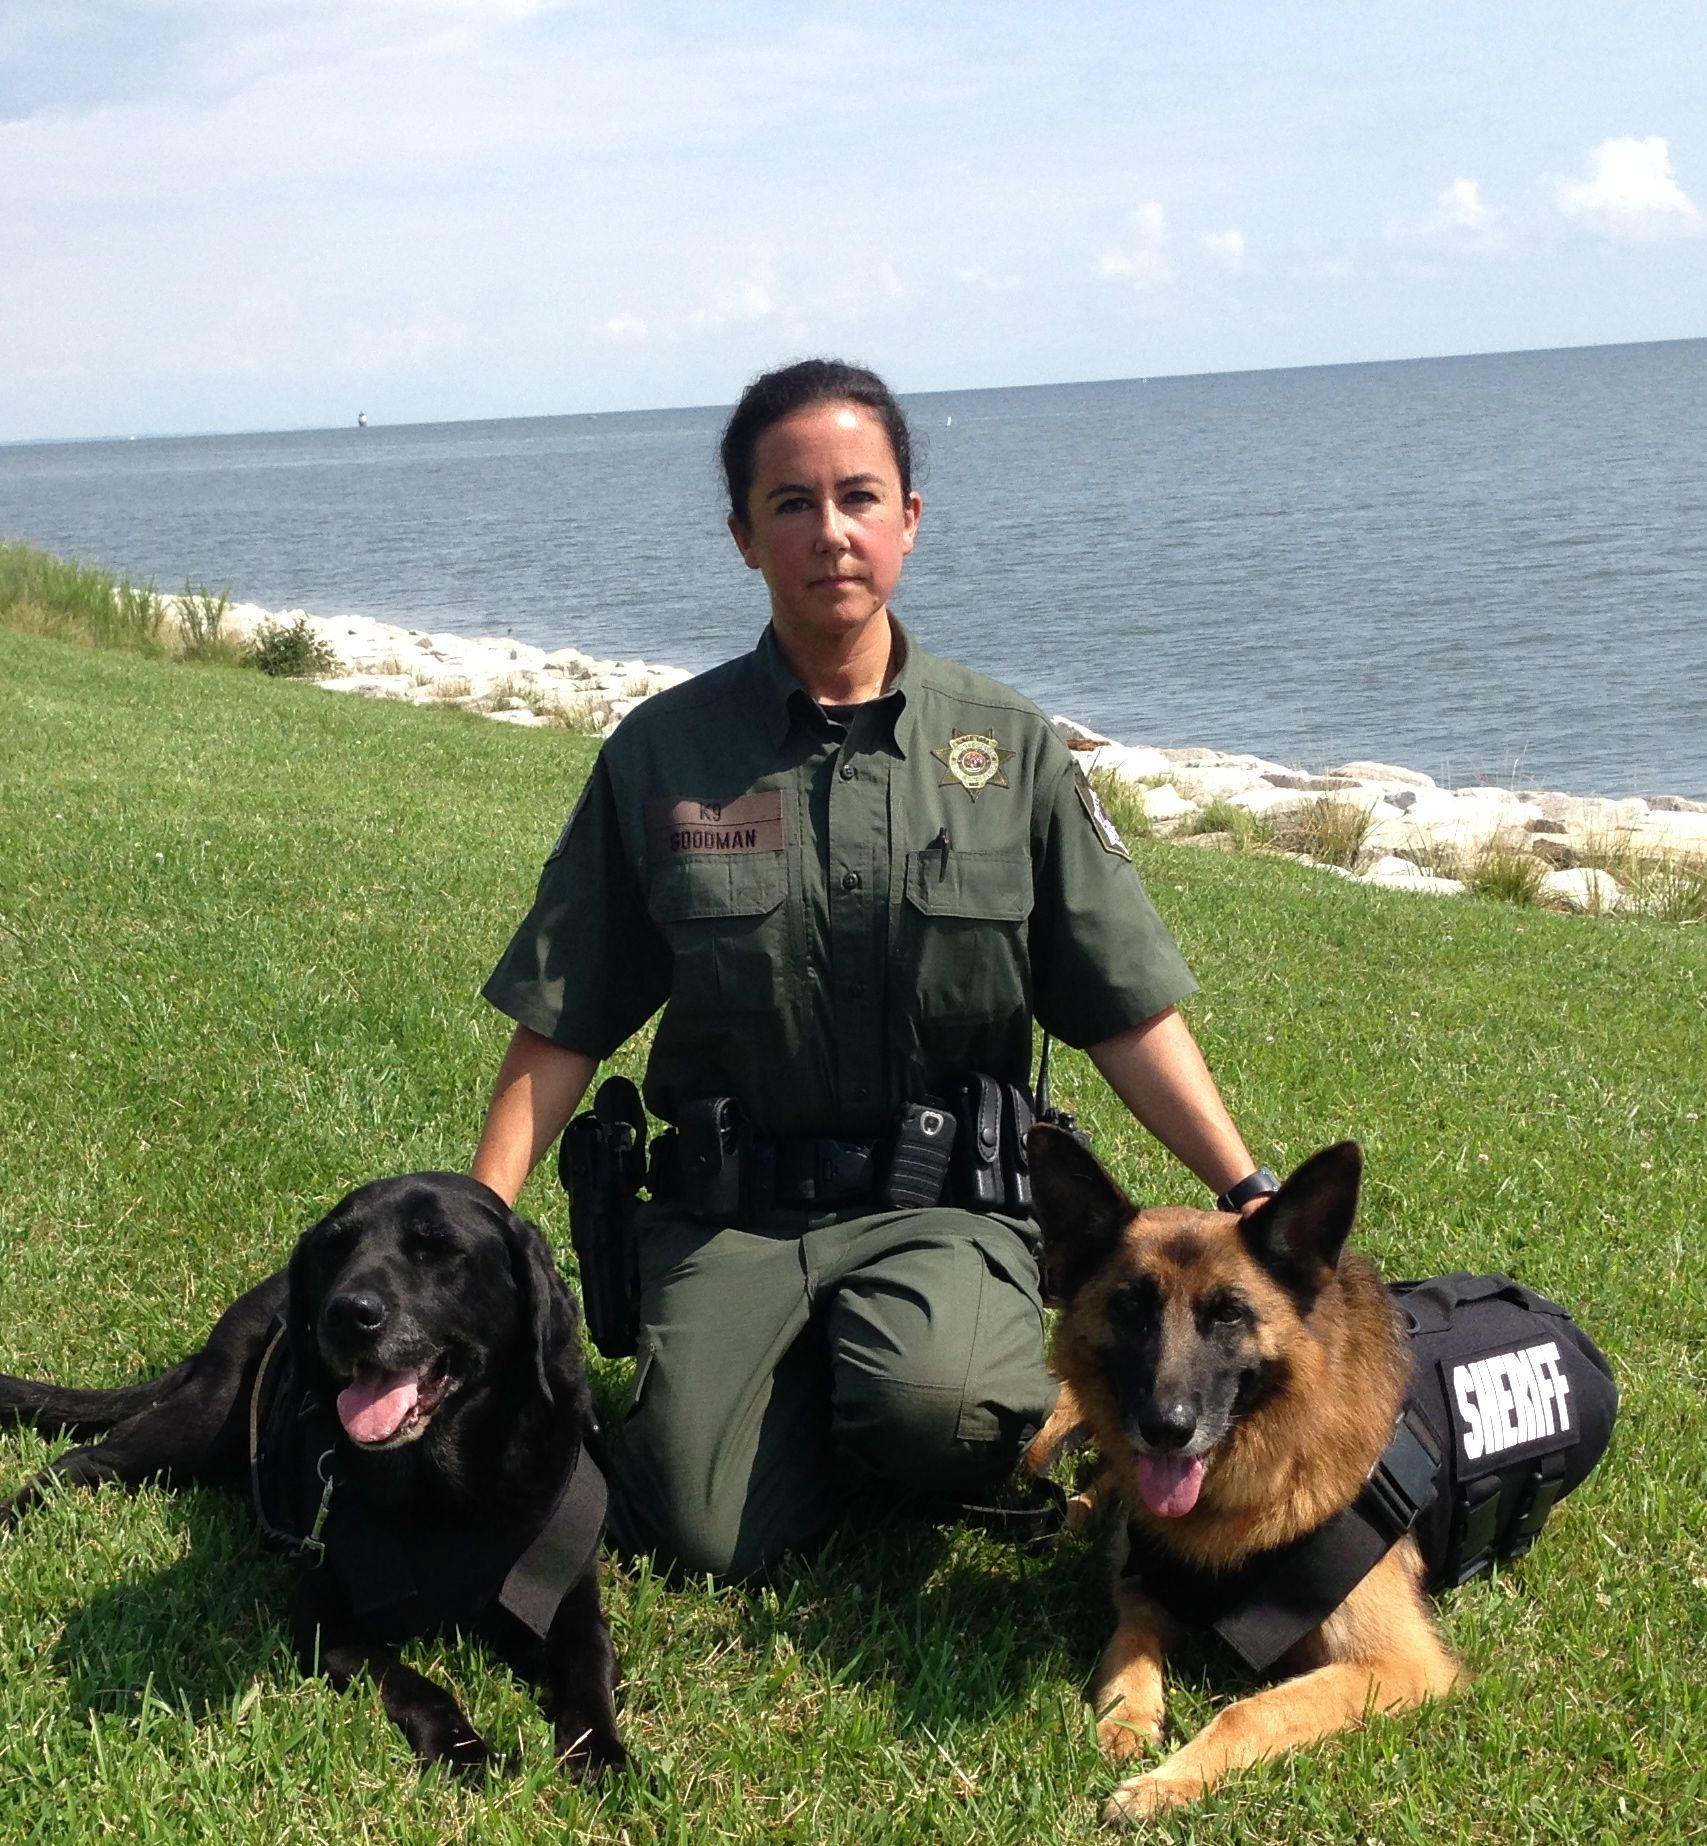 K 9 Units Anne Arundel County Md